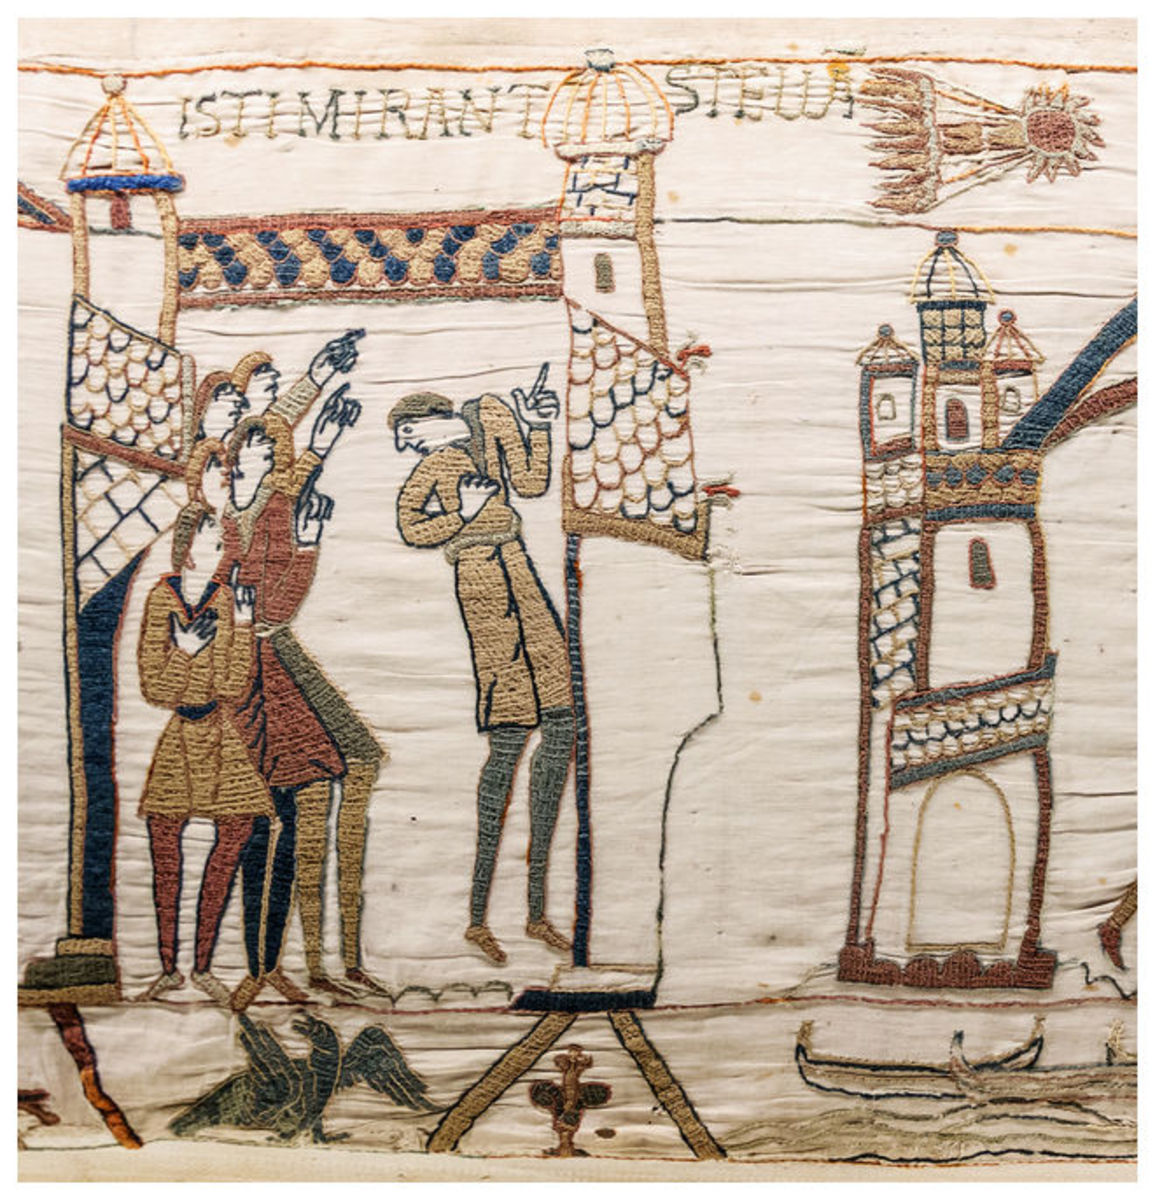 Also according to Odo's commissioned Bayeux Tapestry, the sighting of the 'Long-tail'd star', traditionally an omen of ill luck read differently across the Channel